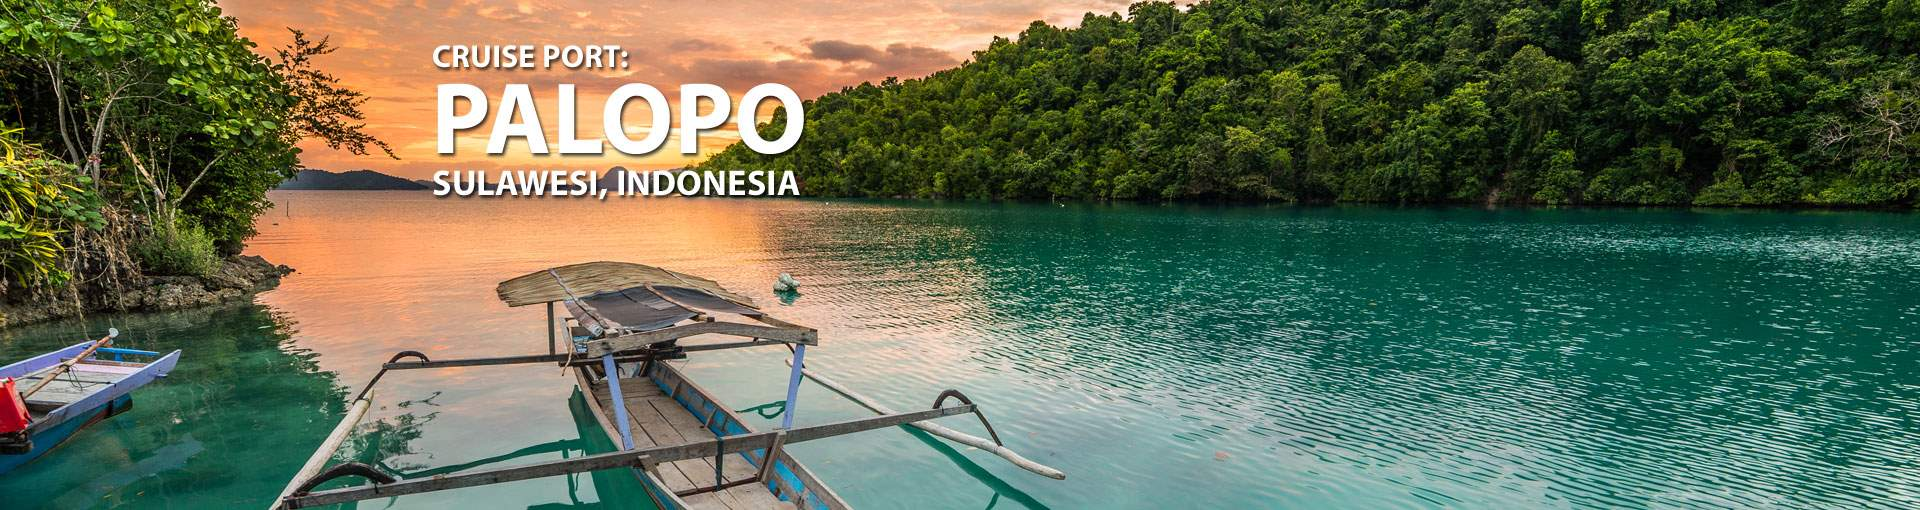 Cruises to Palopo, Sulawesi, Indonesia